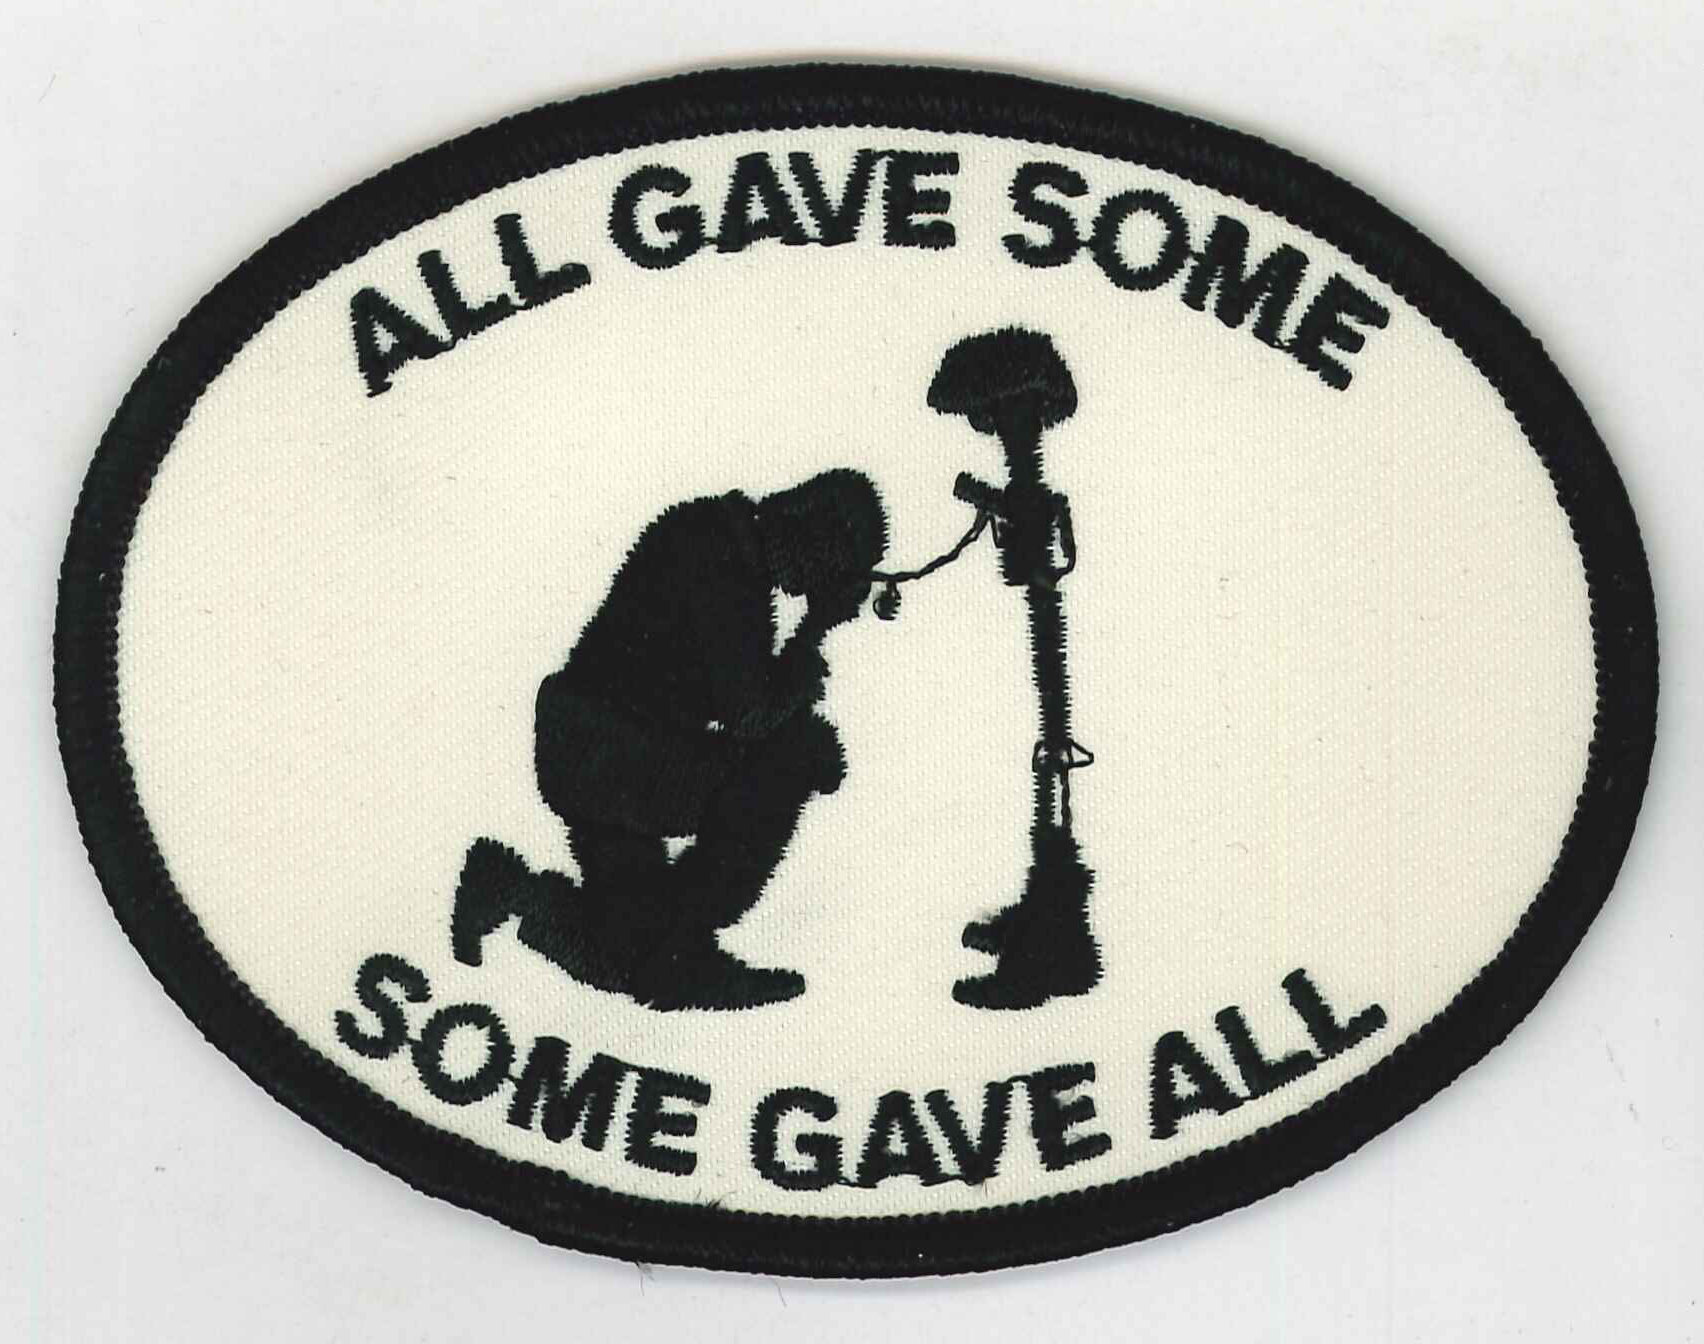 All Gave Some - Some Gave All Patch